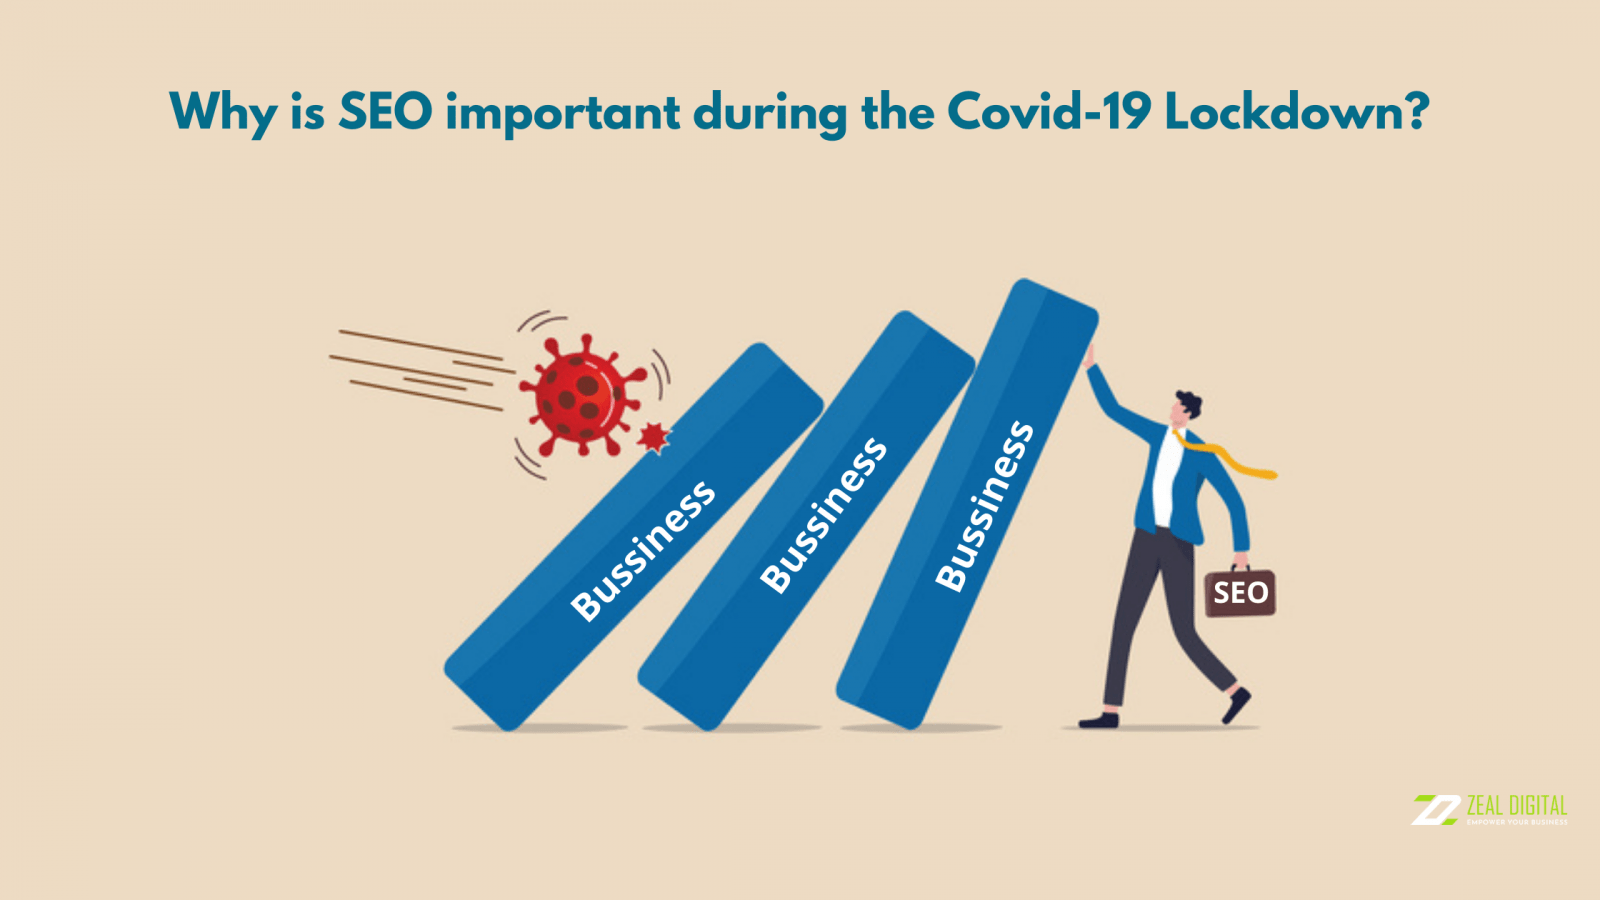 It's 2021 now, and not having a digital footprint of your business will only hurt your establishment in the long run. That is why you must harness the full potential of SEO and digital marketing to sustain a profitable business during this pandemic.